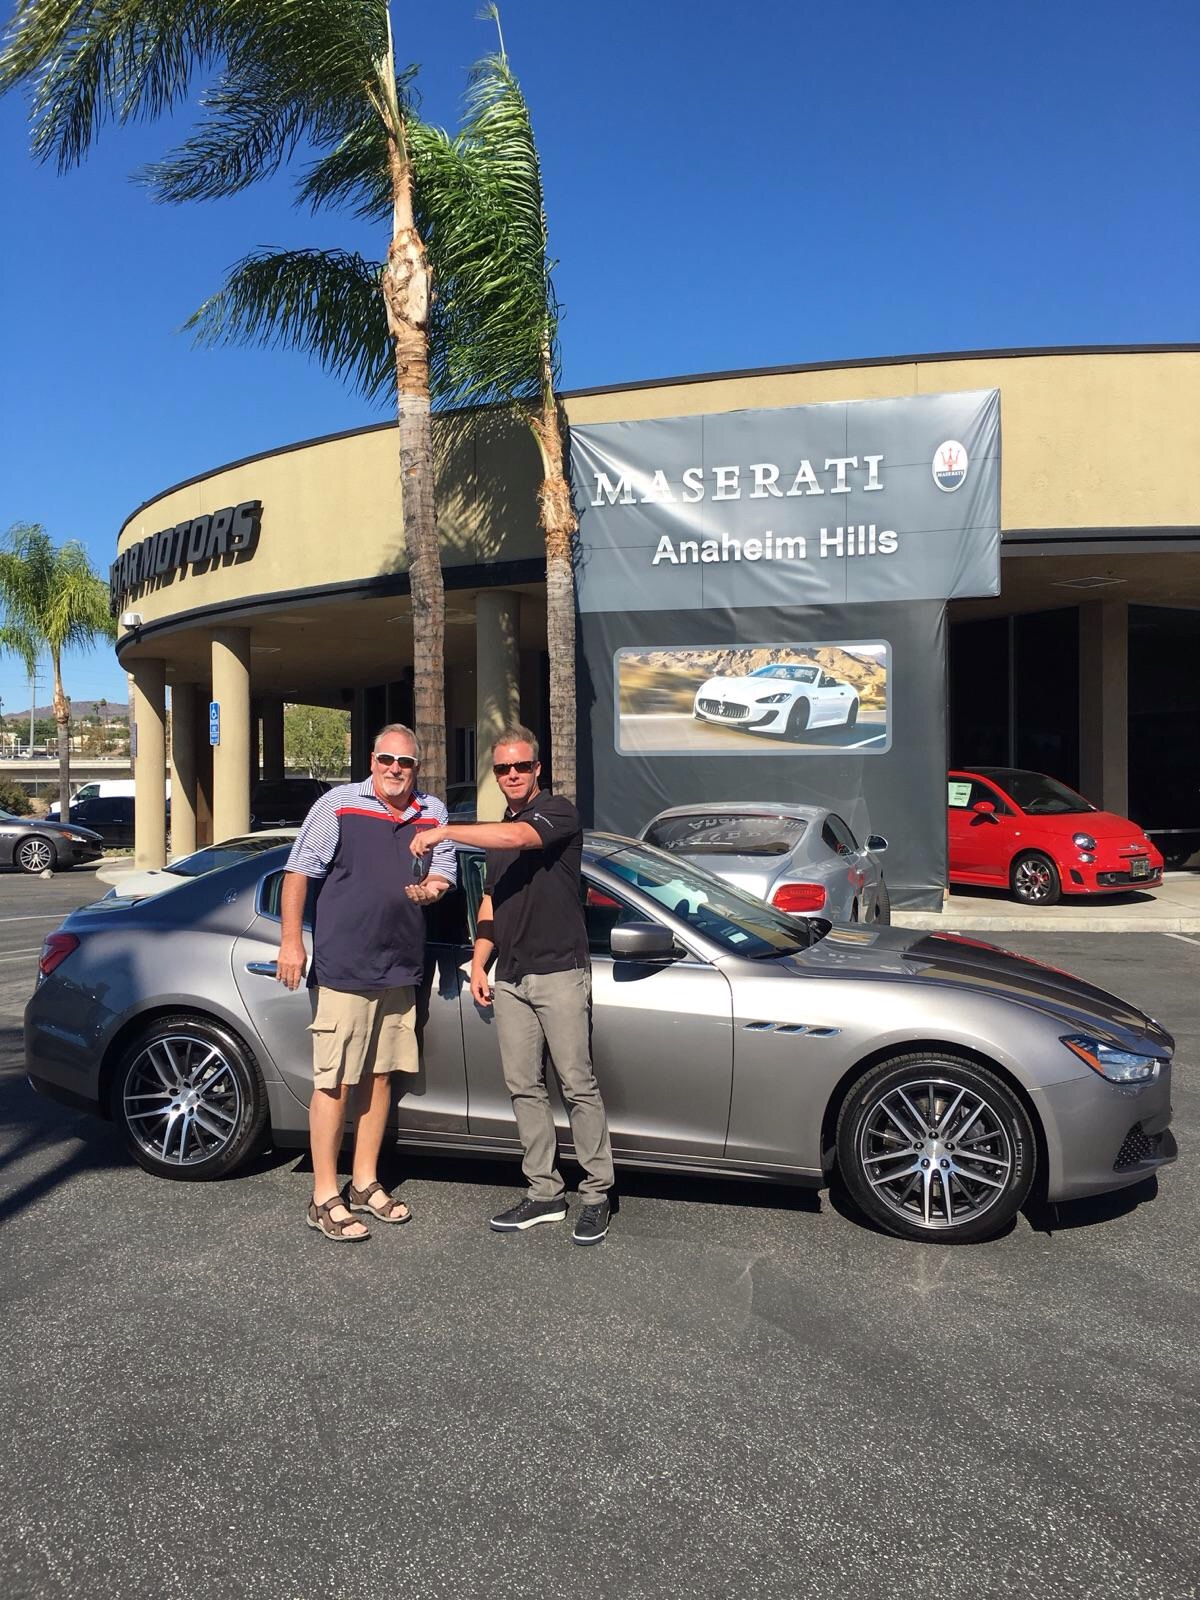 Kirk Williams picks up his new Maserati after scoring a hole-in-one at a charity golf tournament.